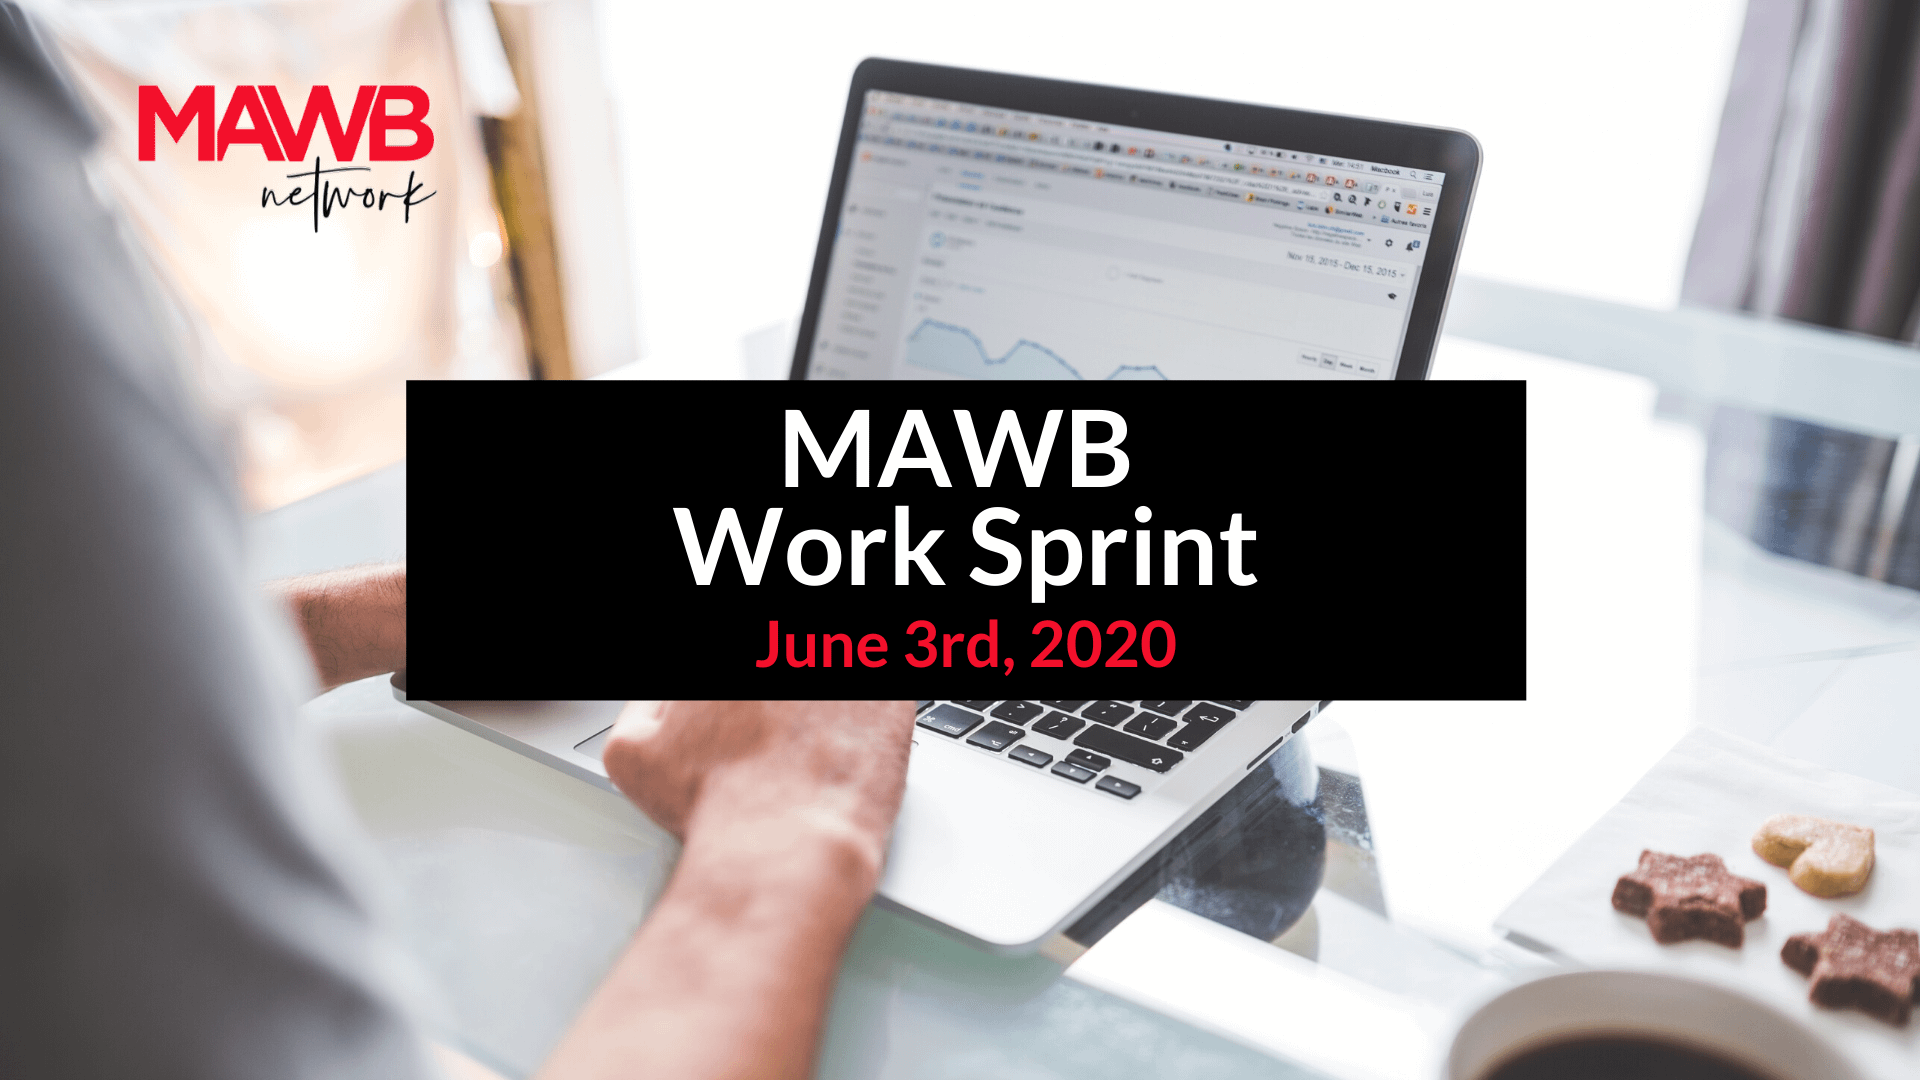 MAWB Work Sprint - June 3rd